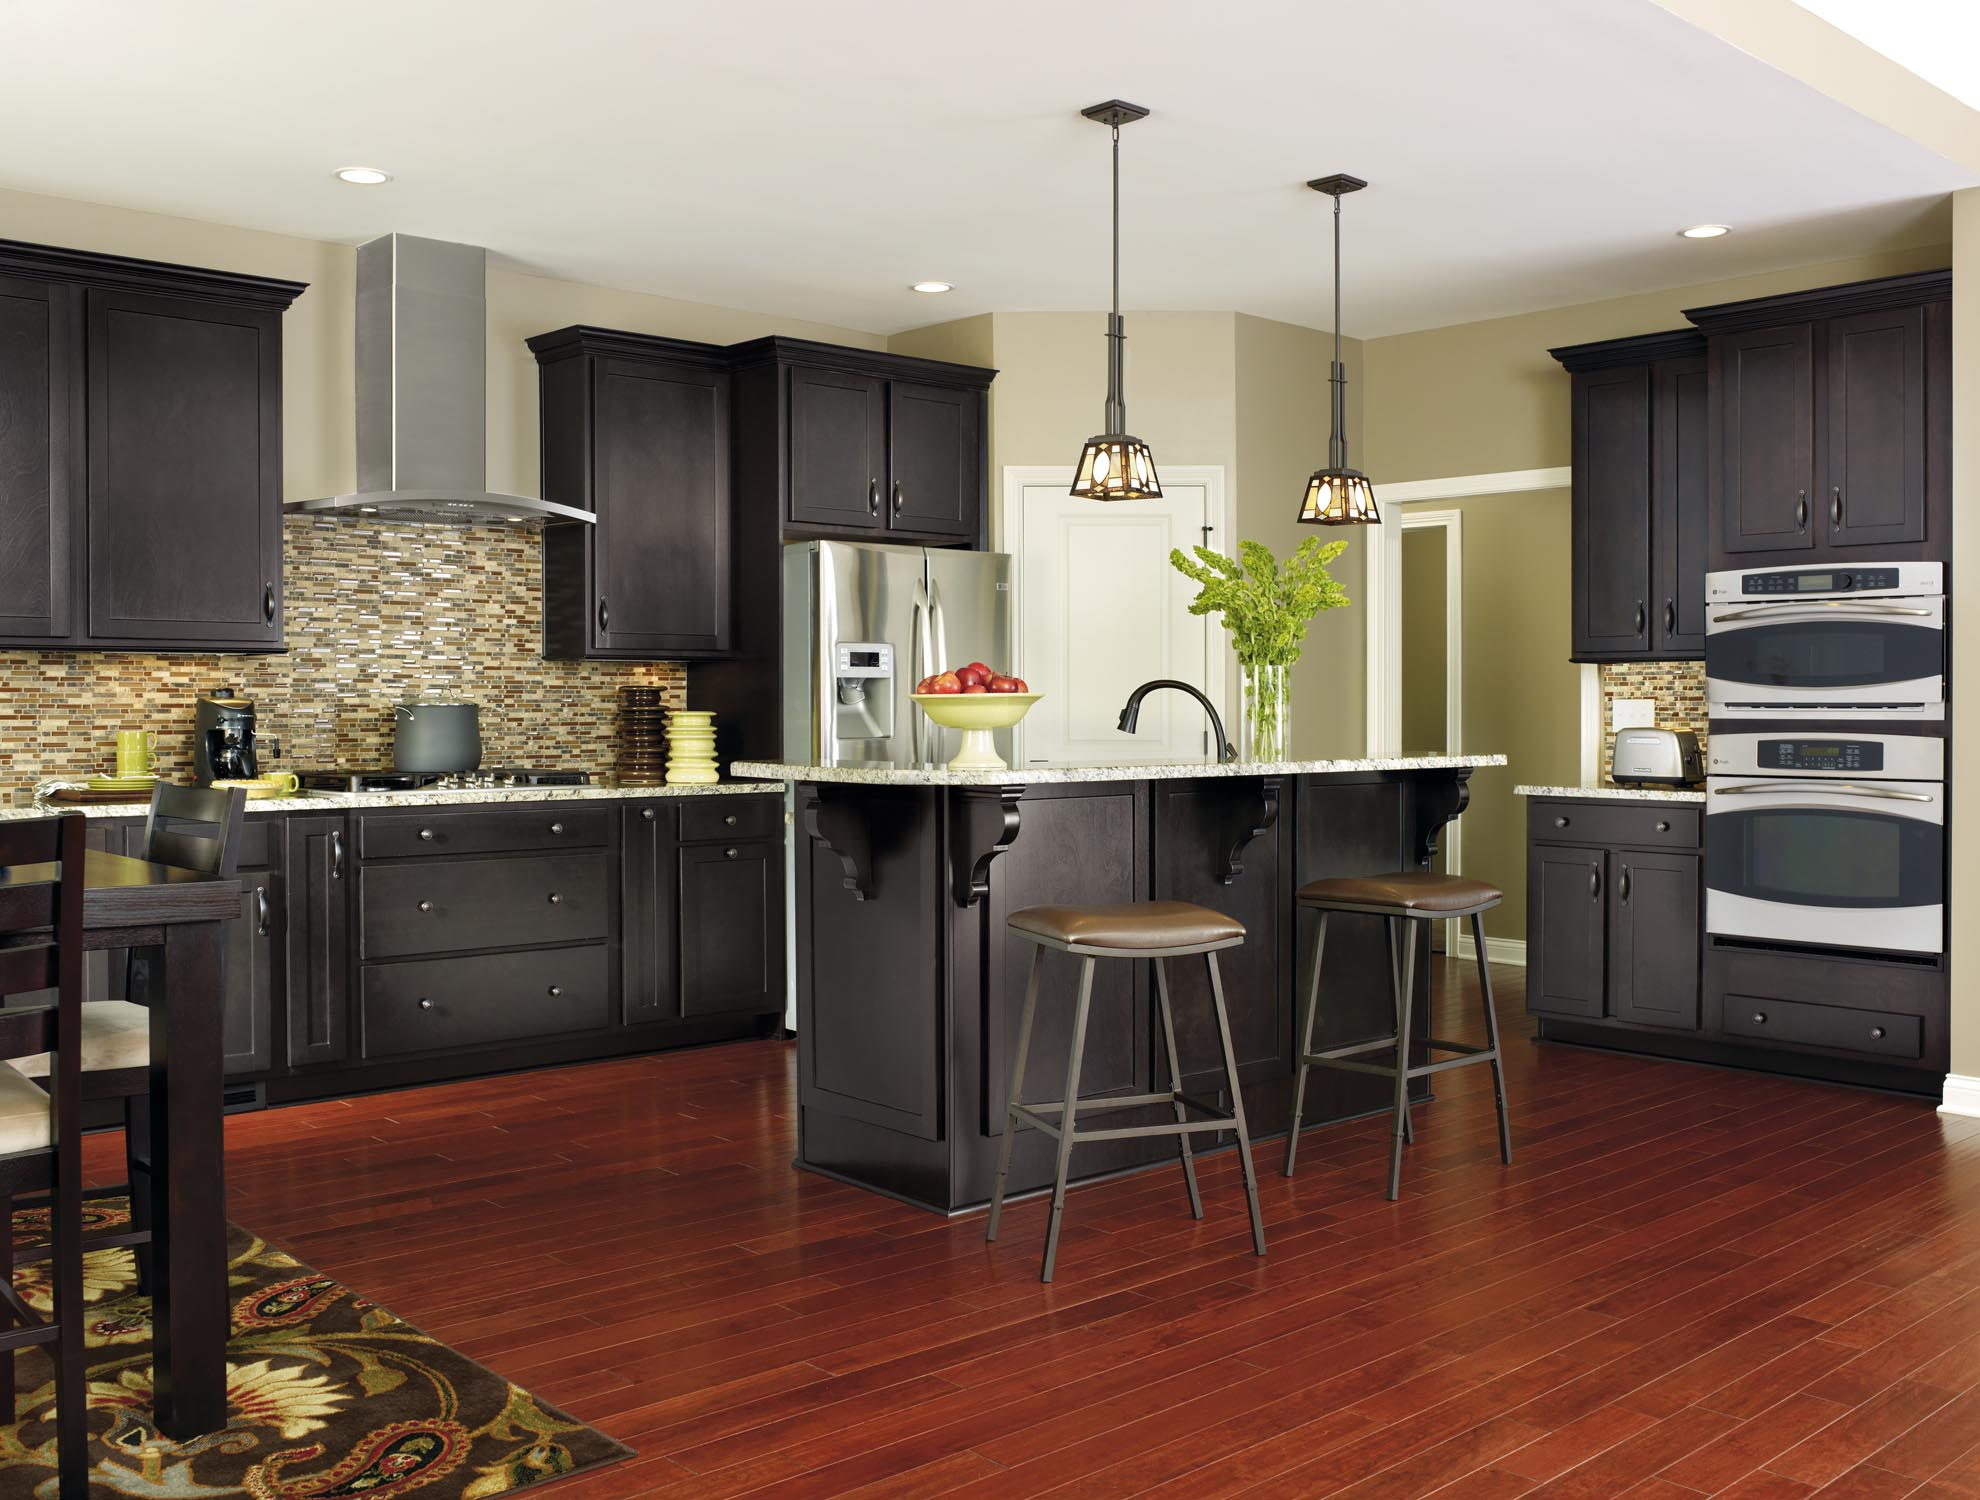 Melbourne Florida Kitchen And Bath Cabinets And Countertops Hammond Kitchen  And Bath Brevard Florida Pictures